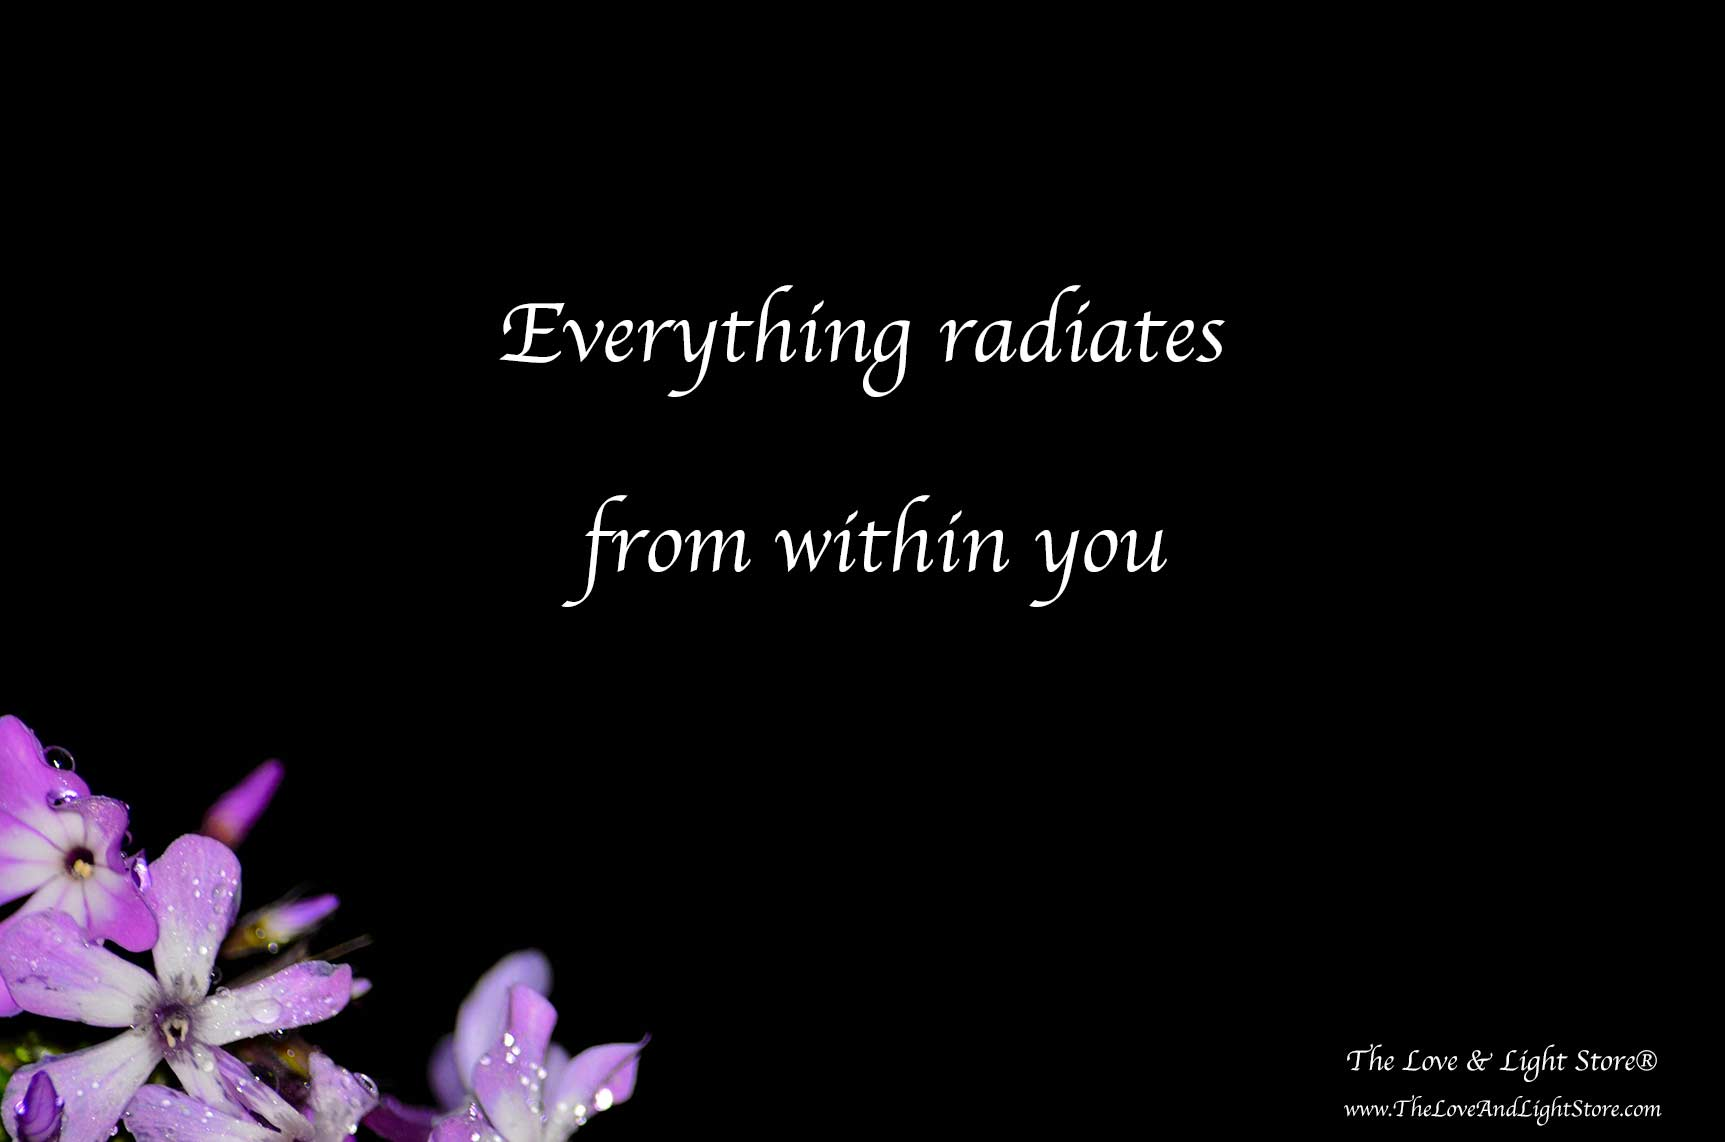 All radiates from within you